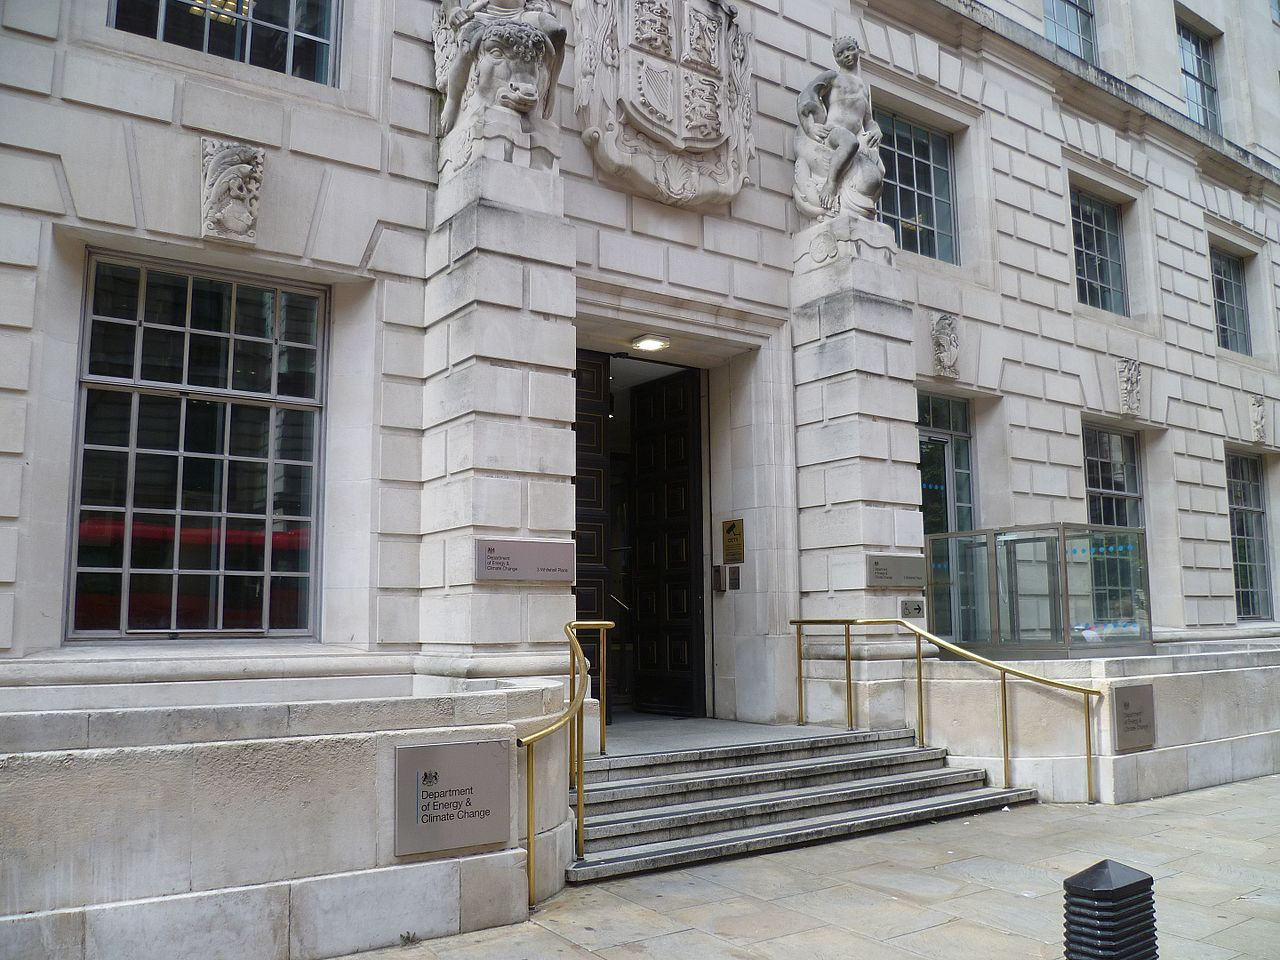 File:Department of Energy & Climate Change, 3 Whitehall ...